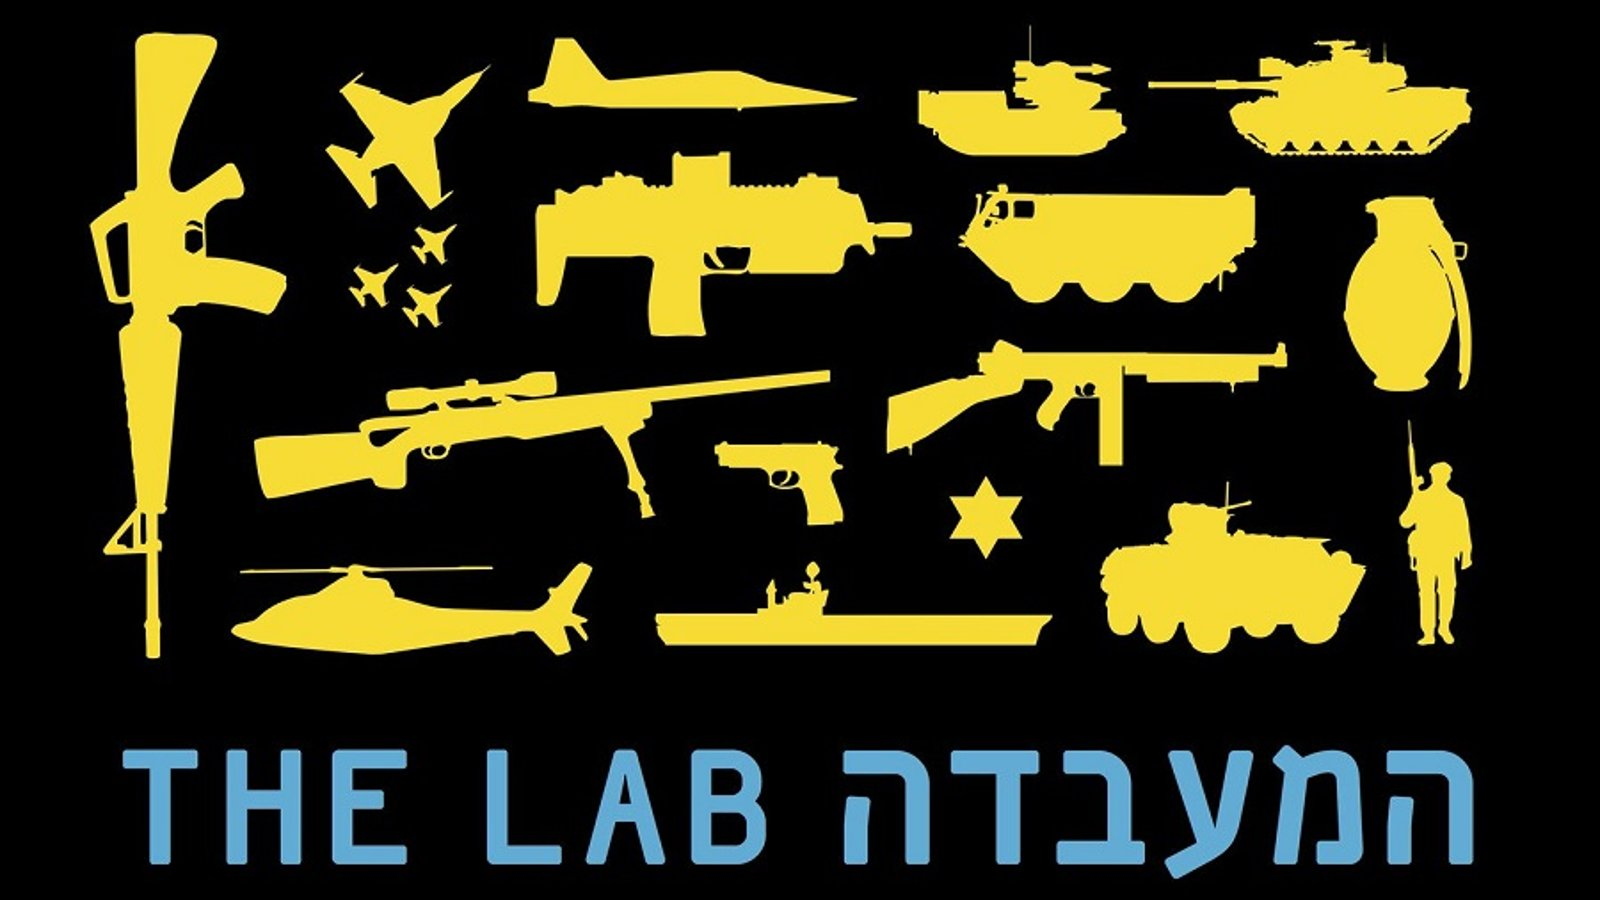 The Lab - The Global Israeli Arms Business